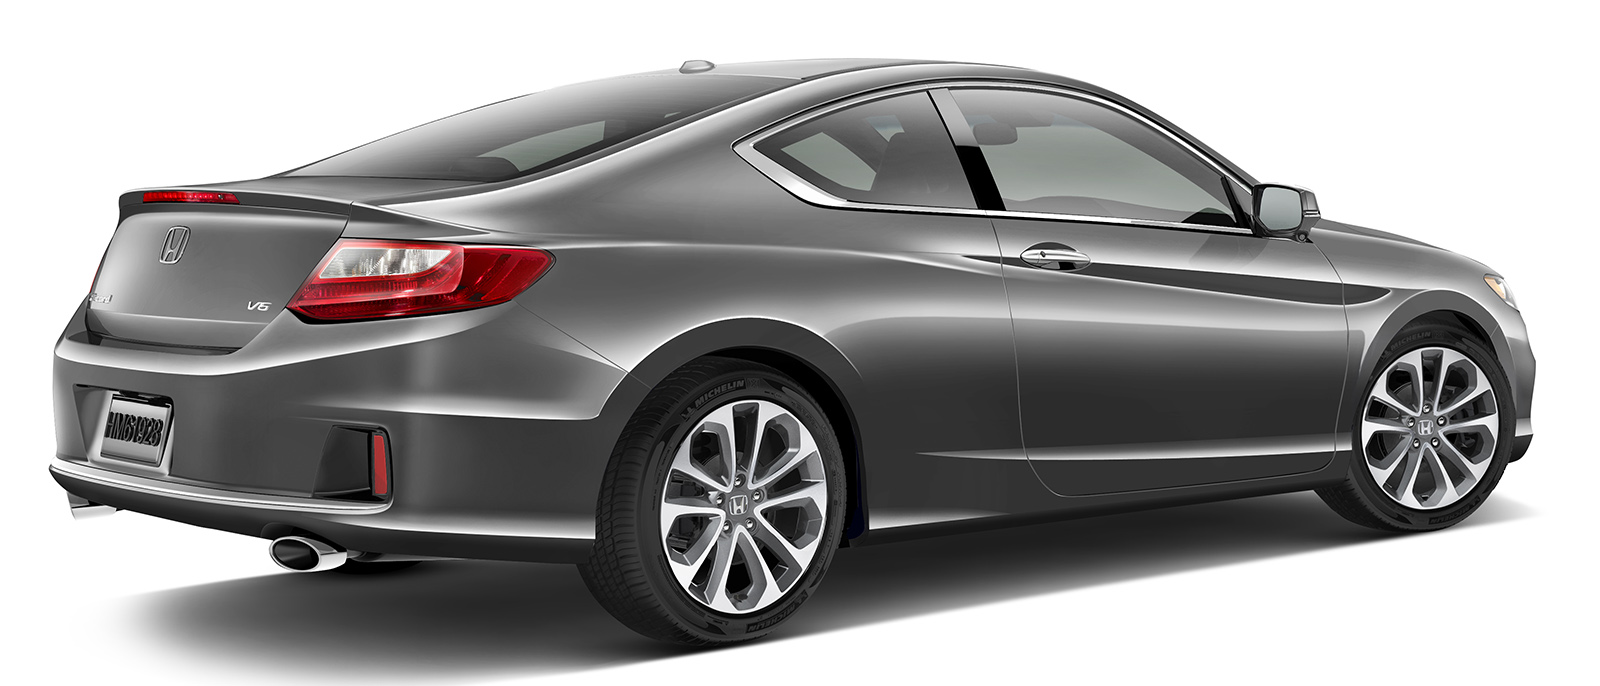 2015 honda accord coupe raynham easton silko honda. Black Bedroom Furniture Sets. Home Design Ideas